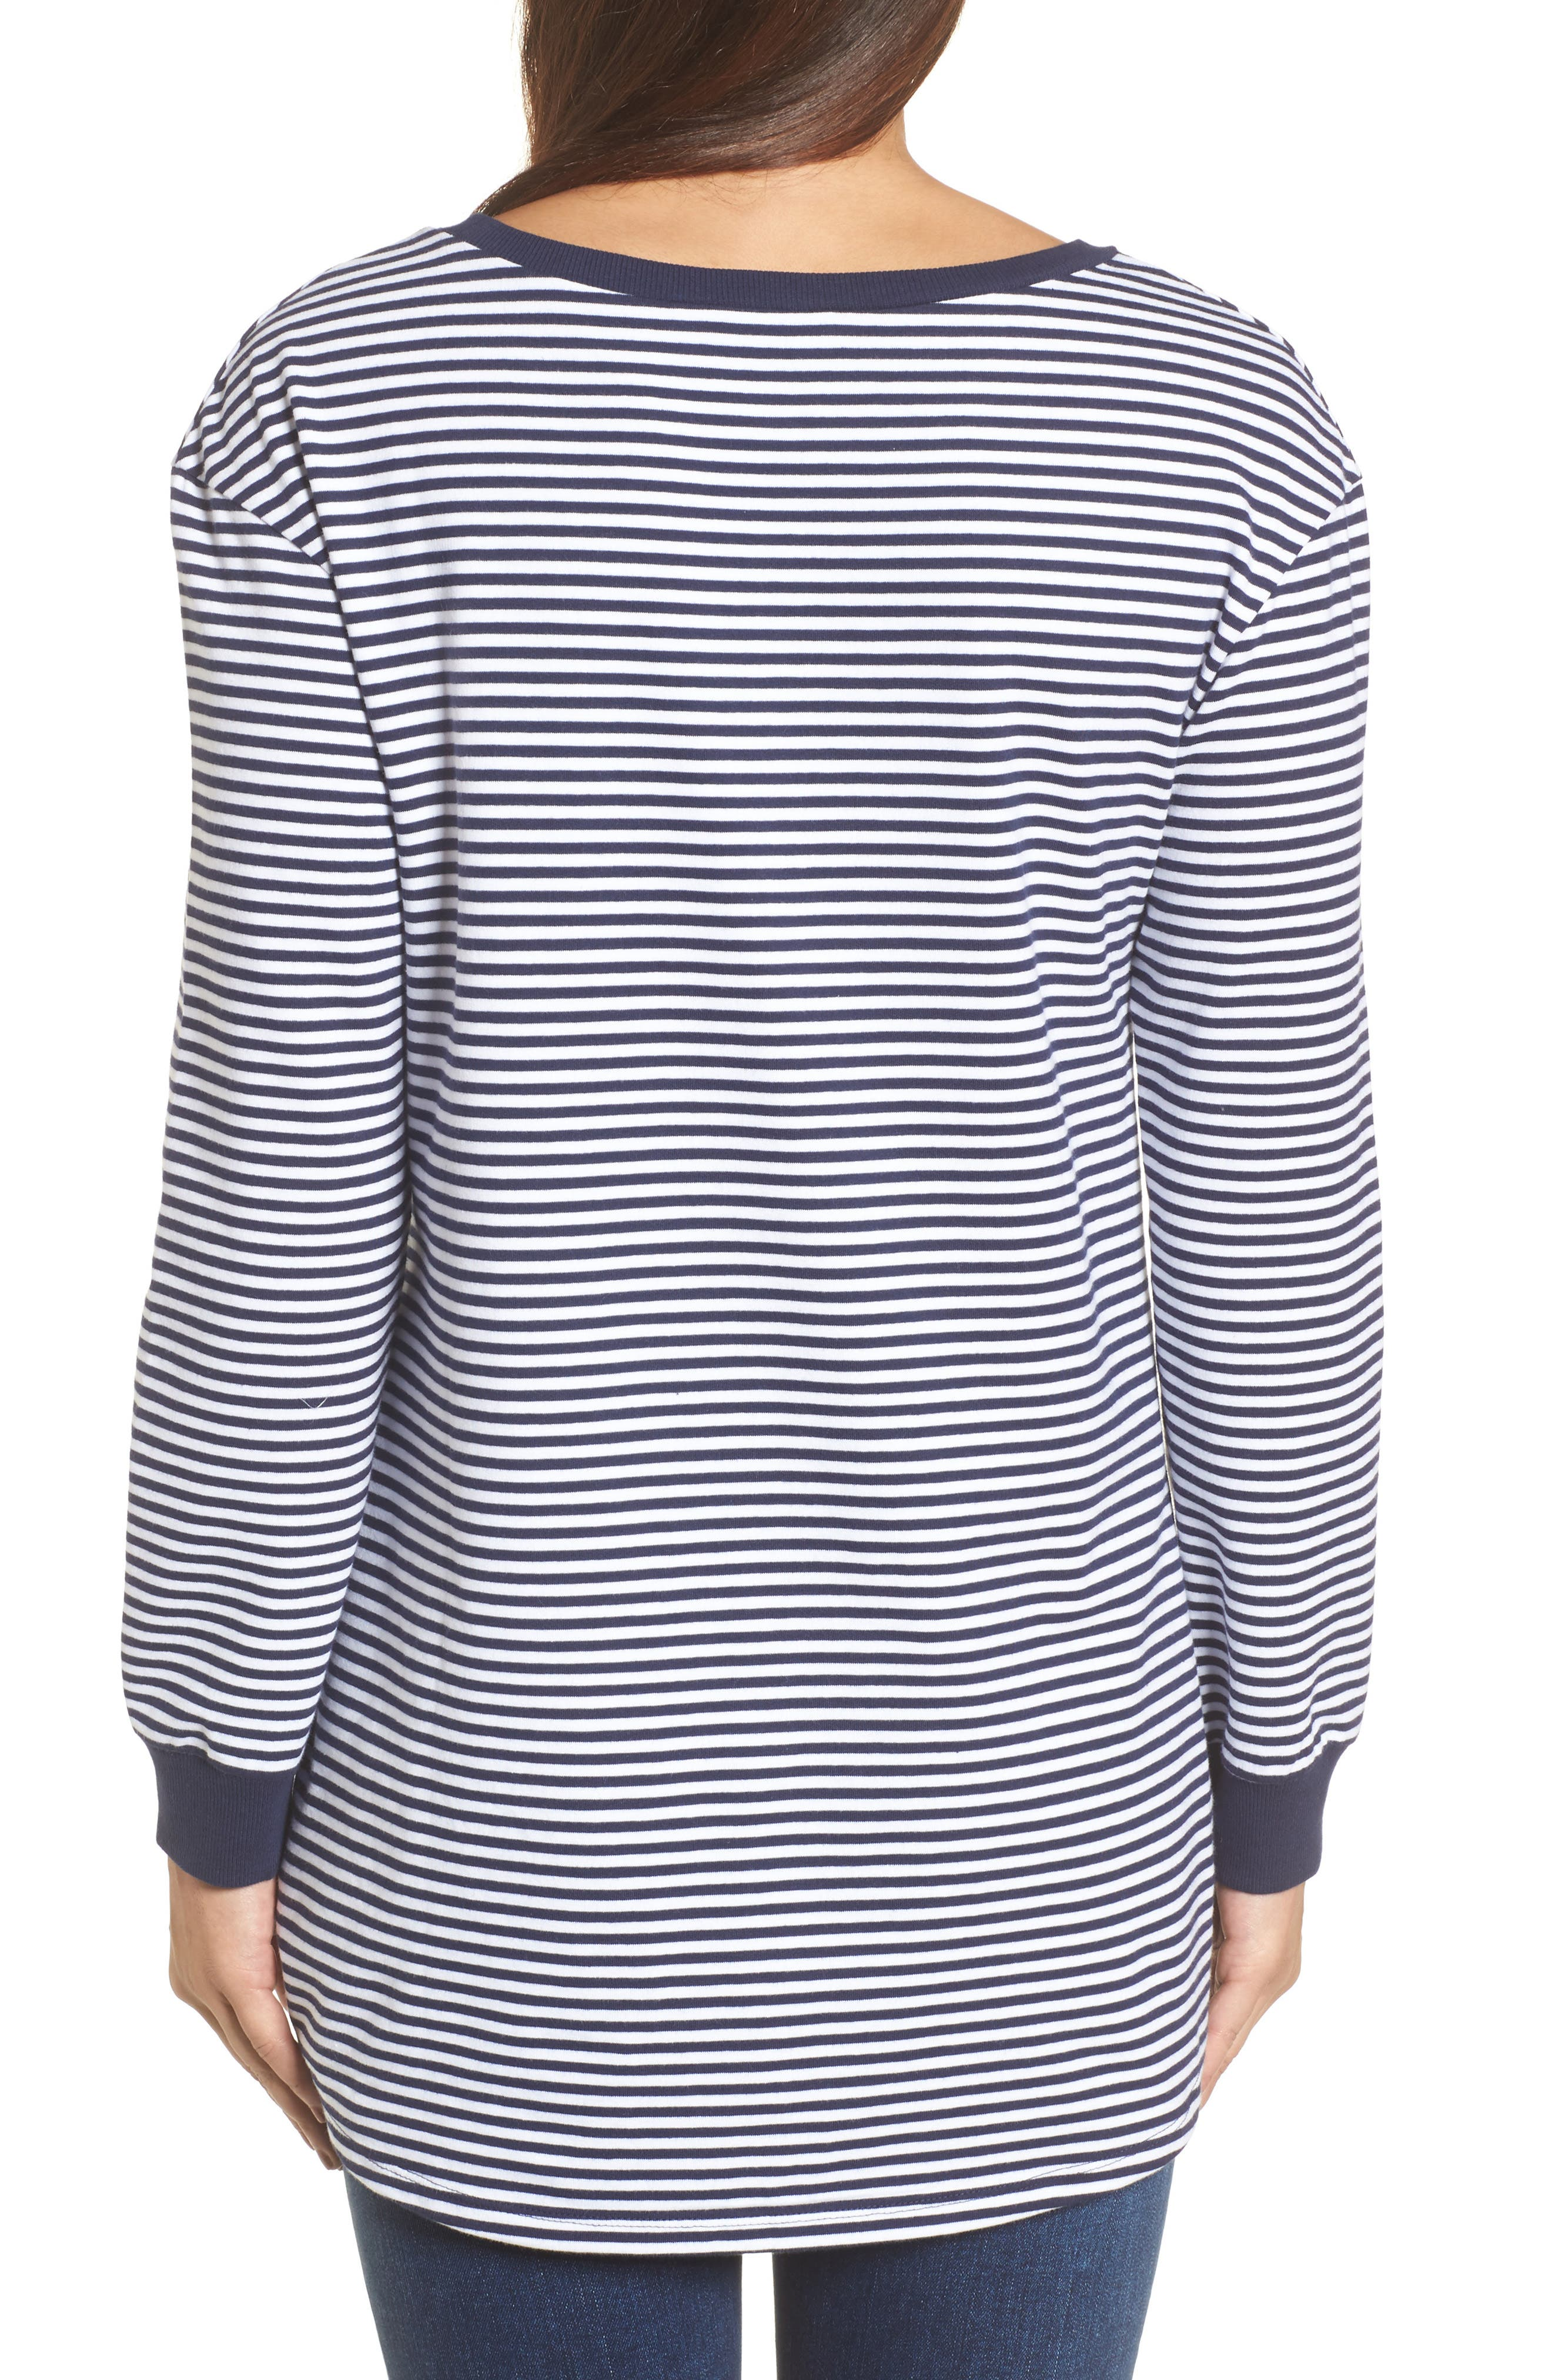 Ruched Front Tunic Sweatshirt,                             Alternate thumbnail 2, color,                             Navy- White Stripe